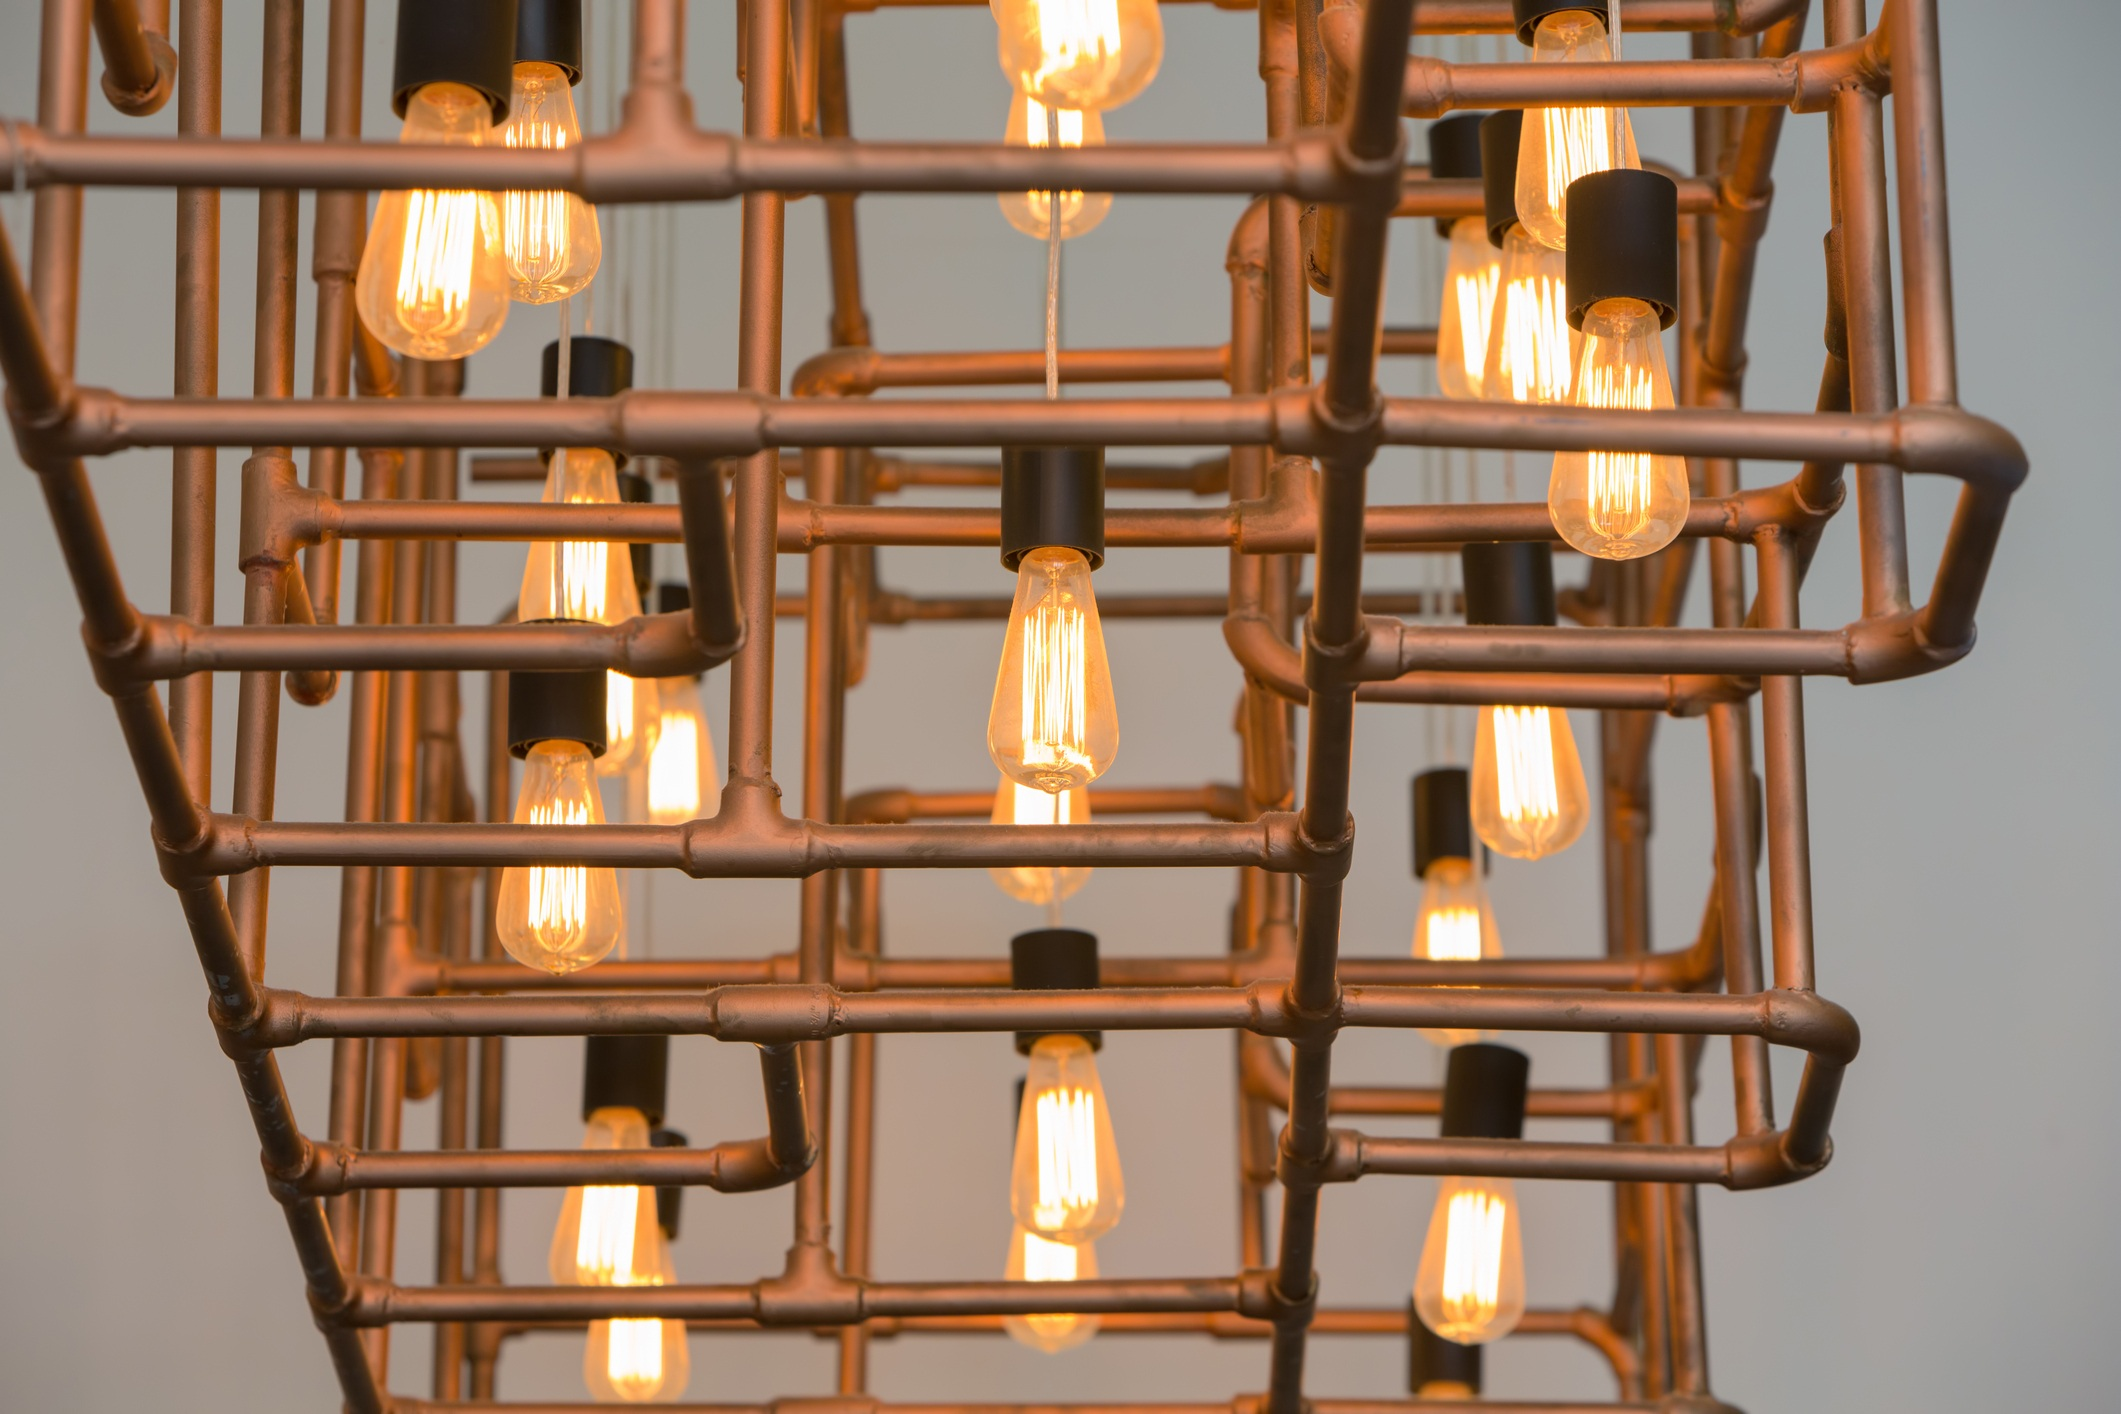 Vintage style light bulbs hang and decorated with alloy pipes in a living room